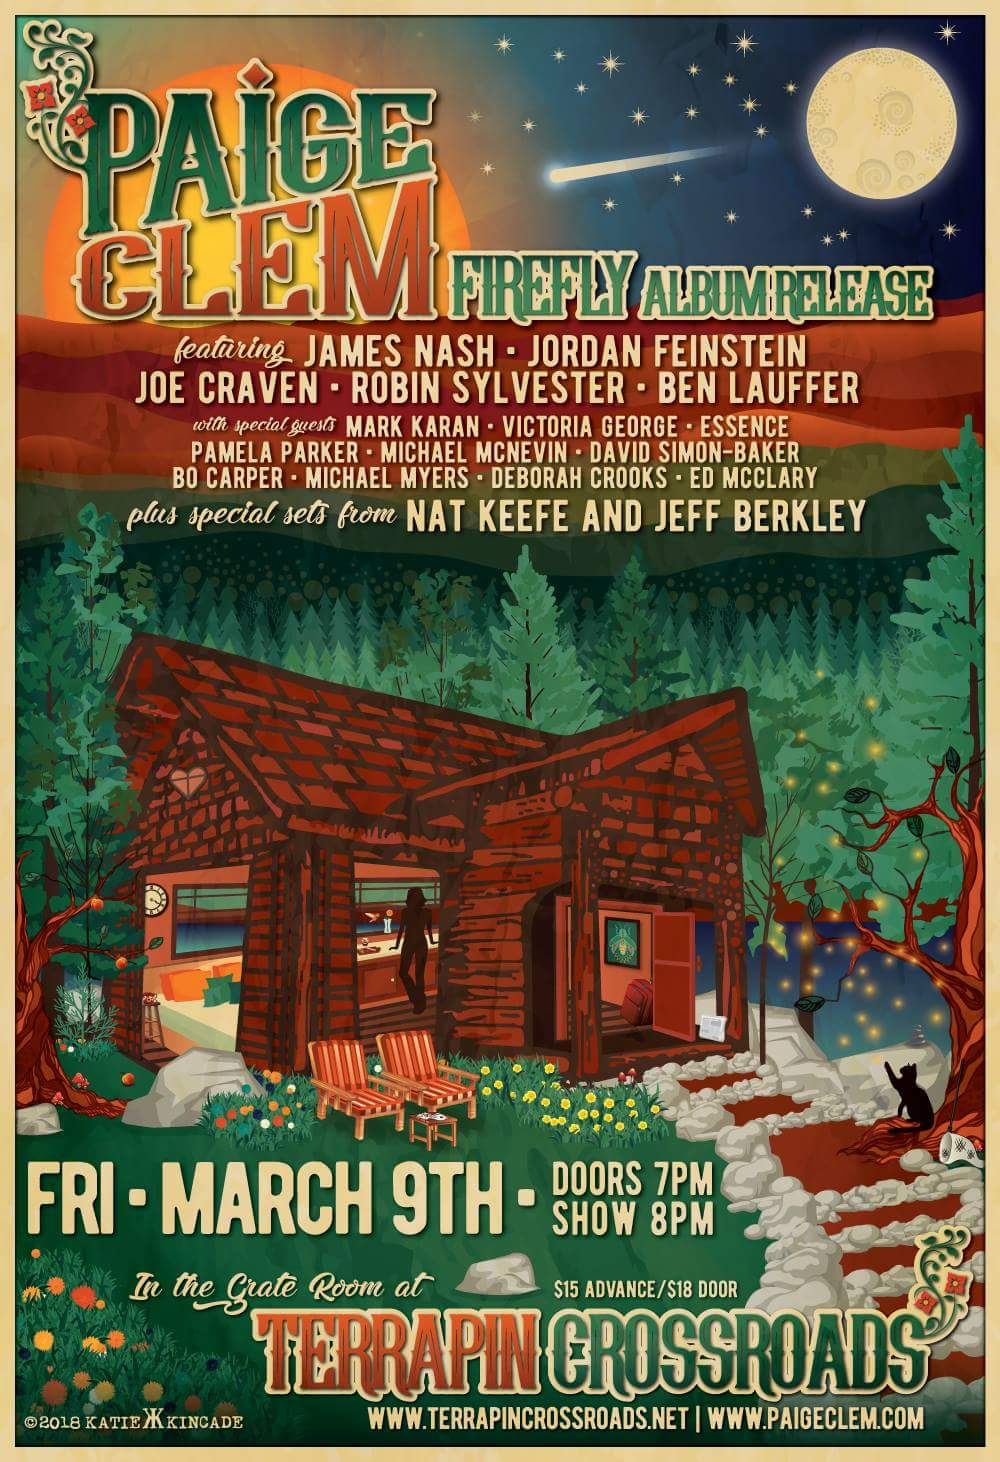 3/9 : Paige Clem Firefly Album Release